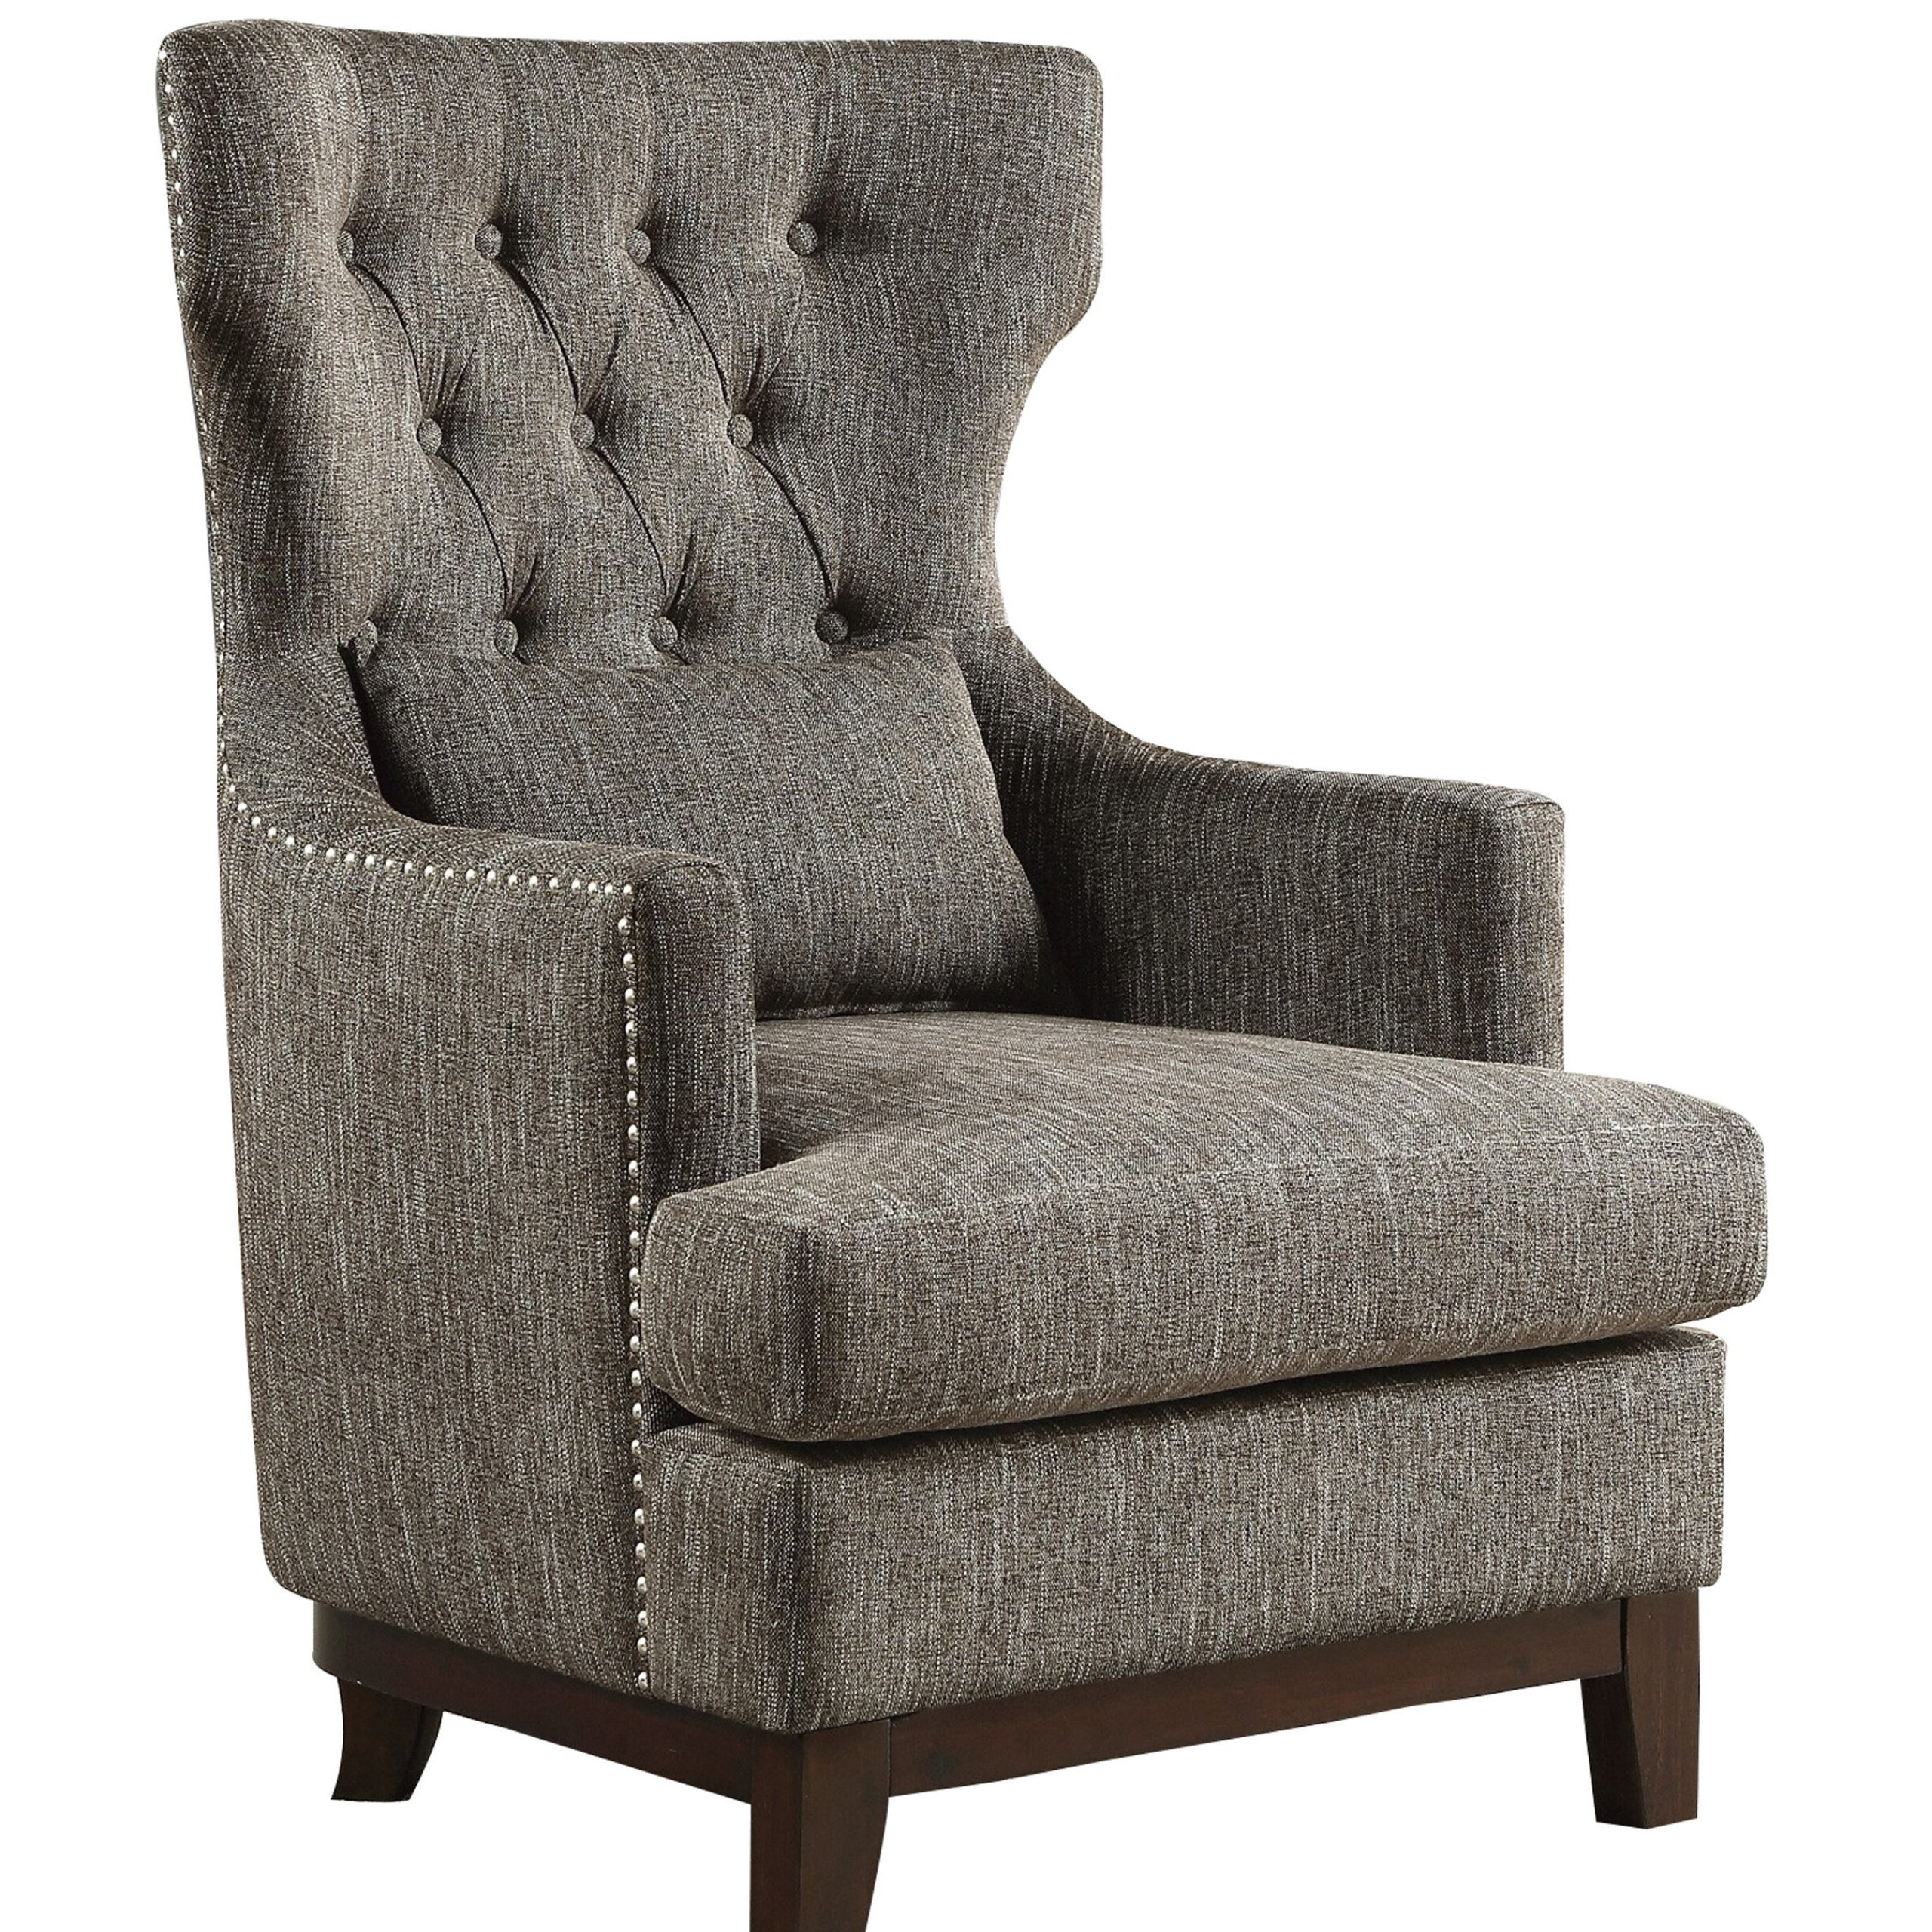 Ridgemark Fabric Upholstered Wingback Chair Regarding Most Recent Galesville Tufted Polyester Wingback Chairs (View 6 of 20)